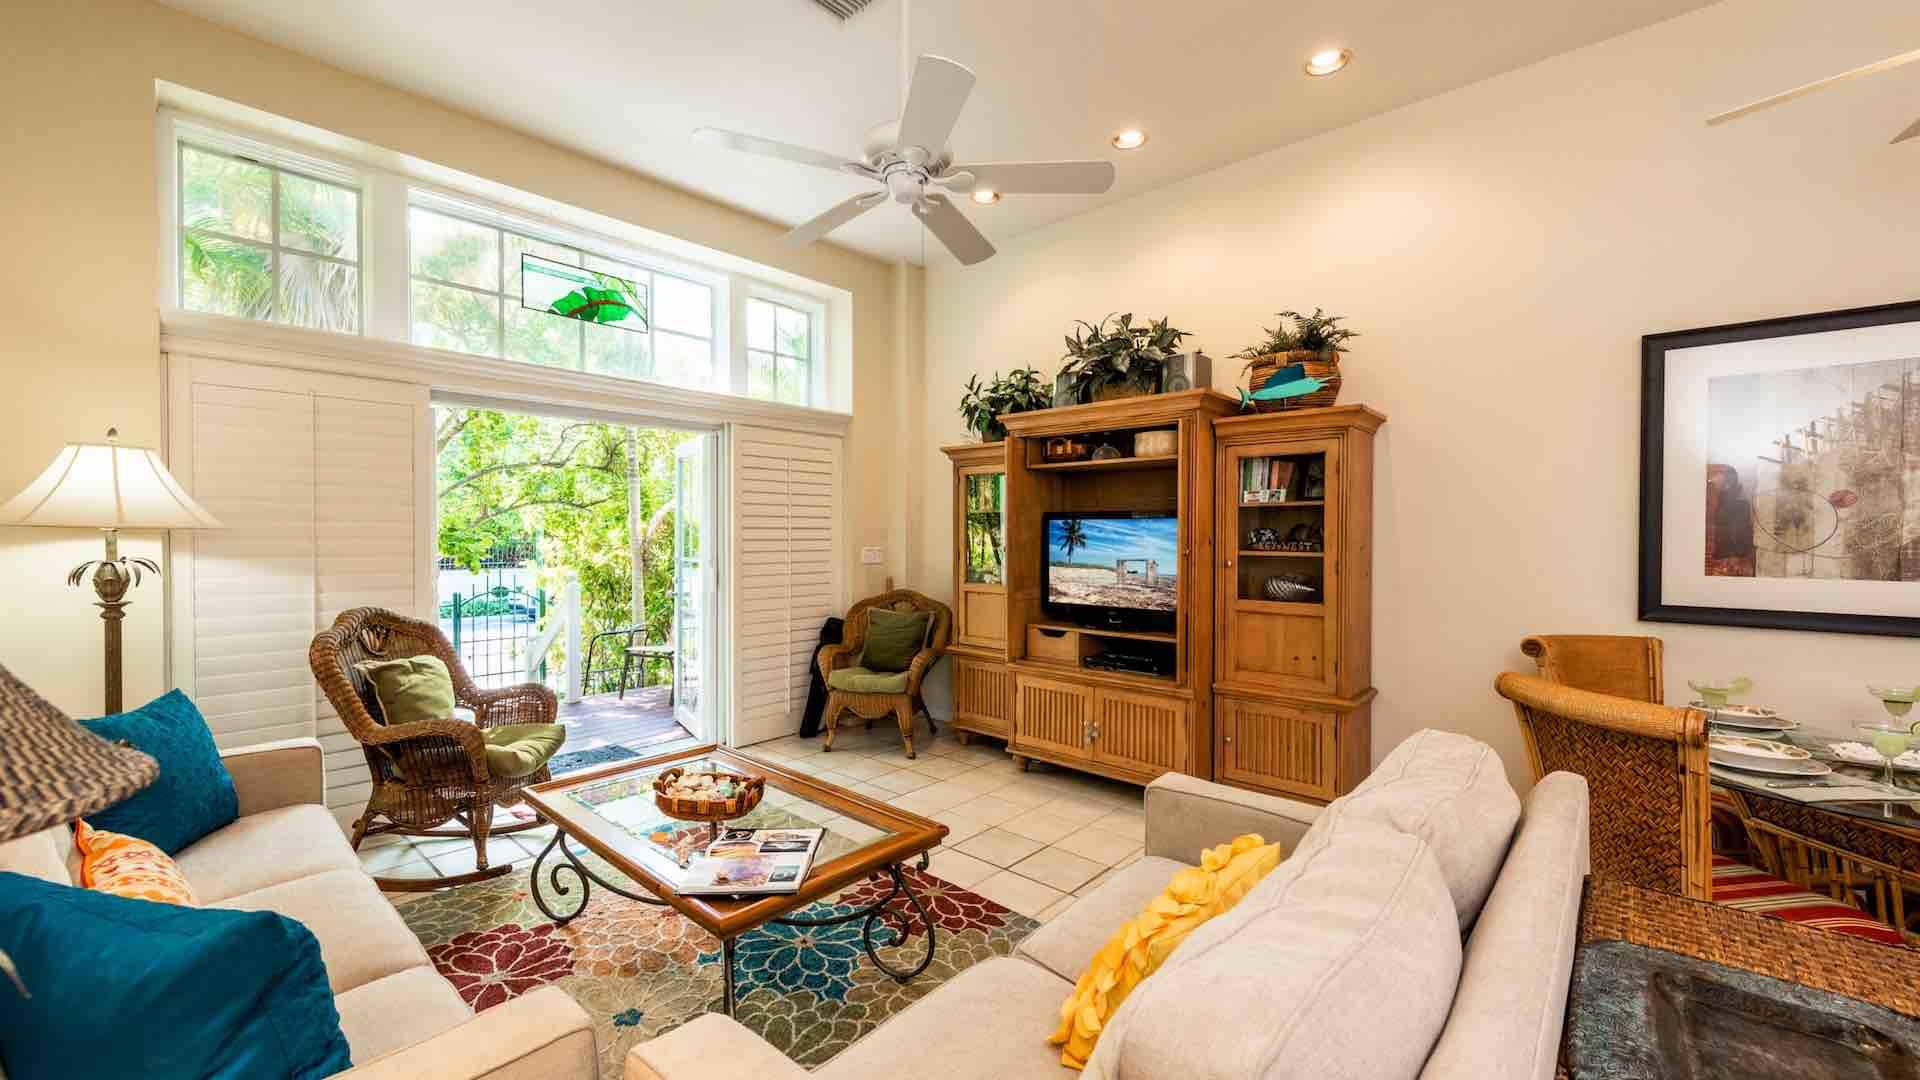 Villa Bahama has been furnished to a very high standard, in the lush tropical style inspired by Tommy Bahama...